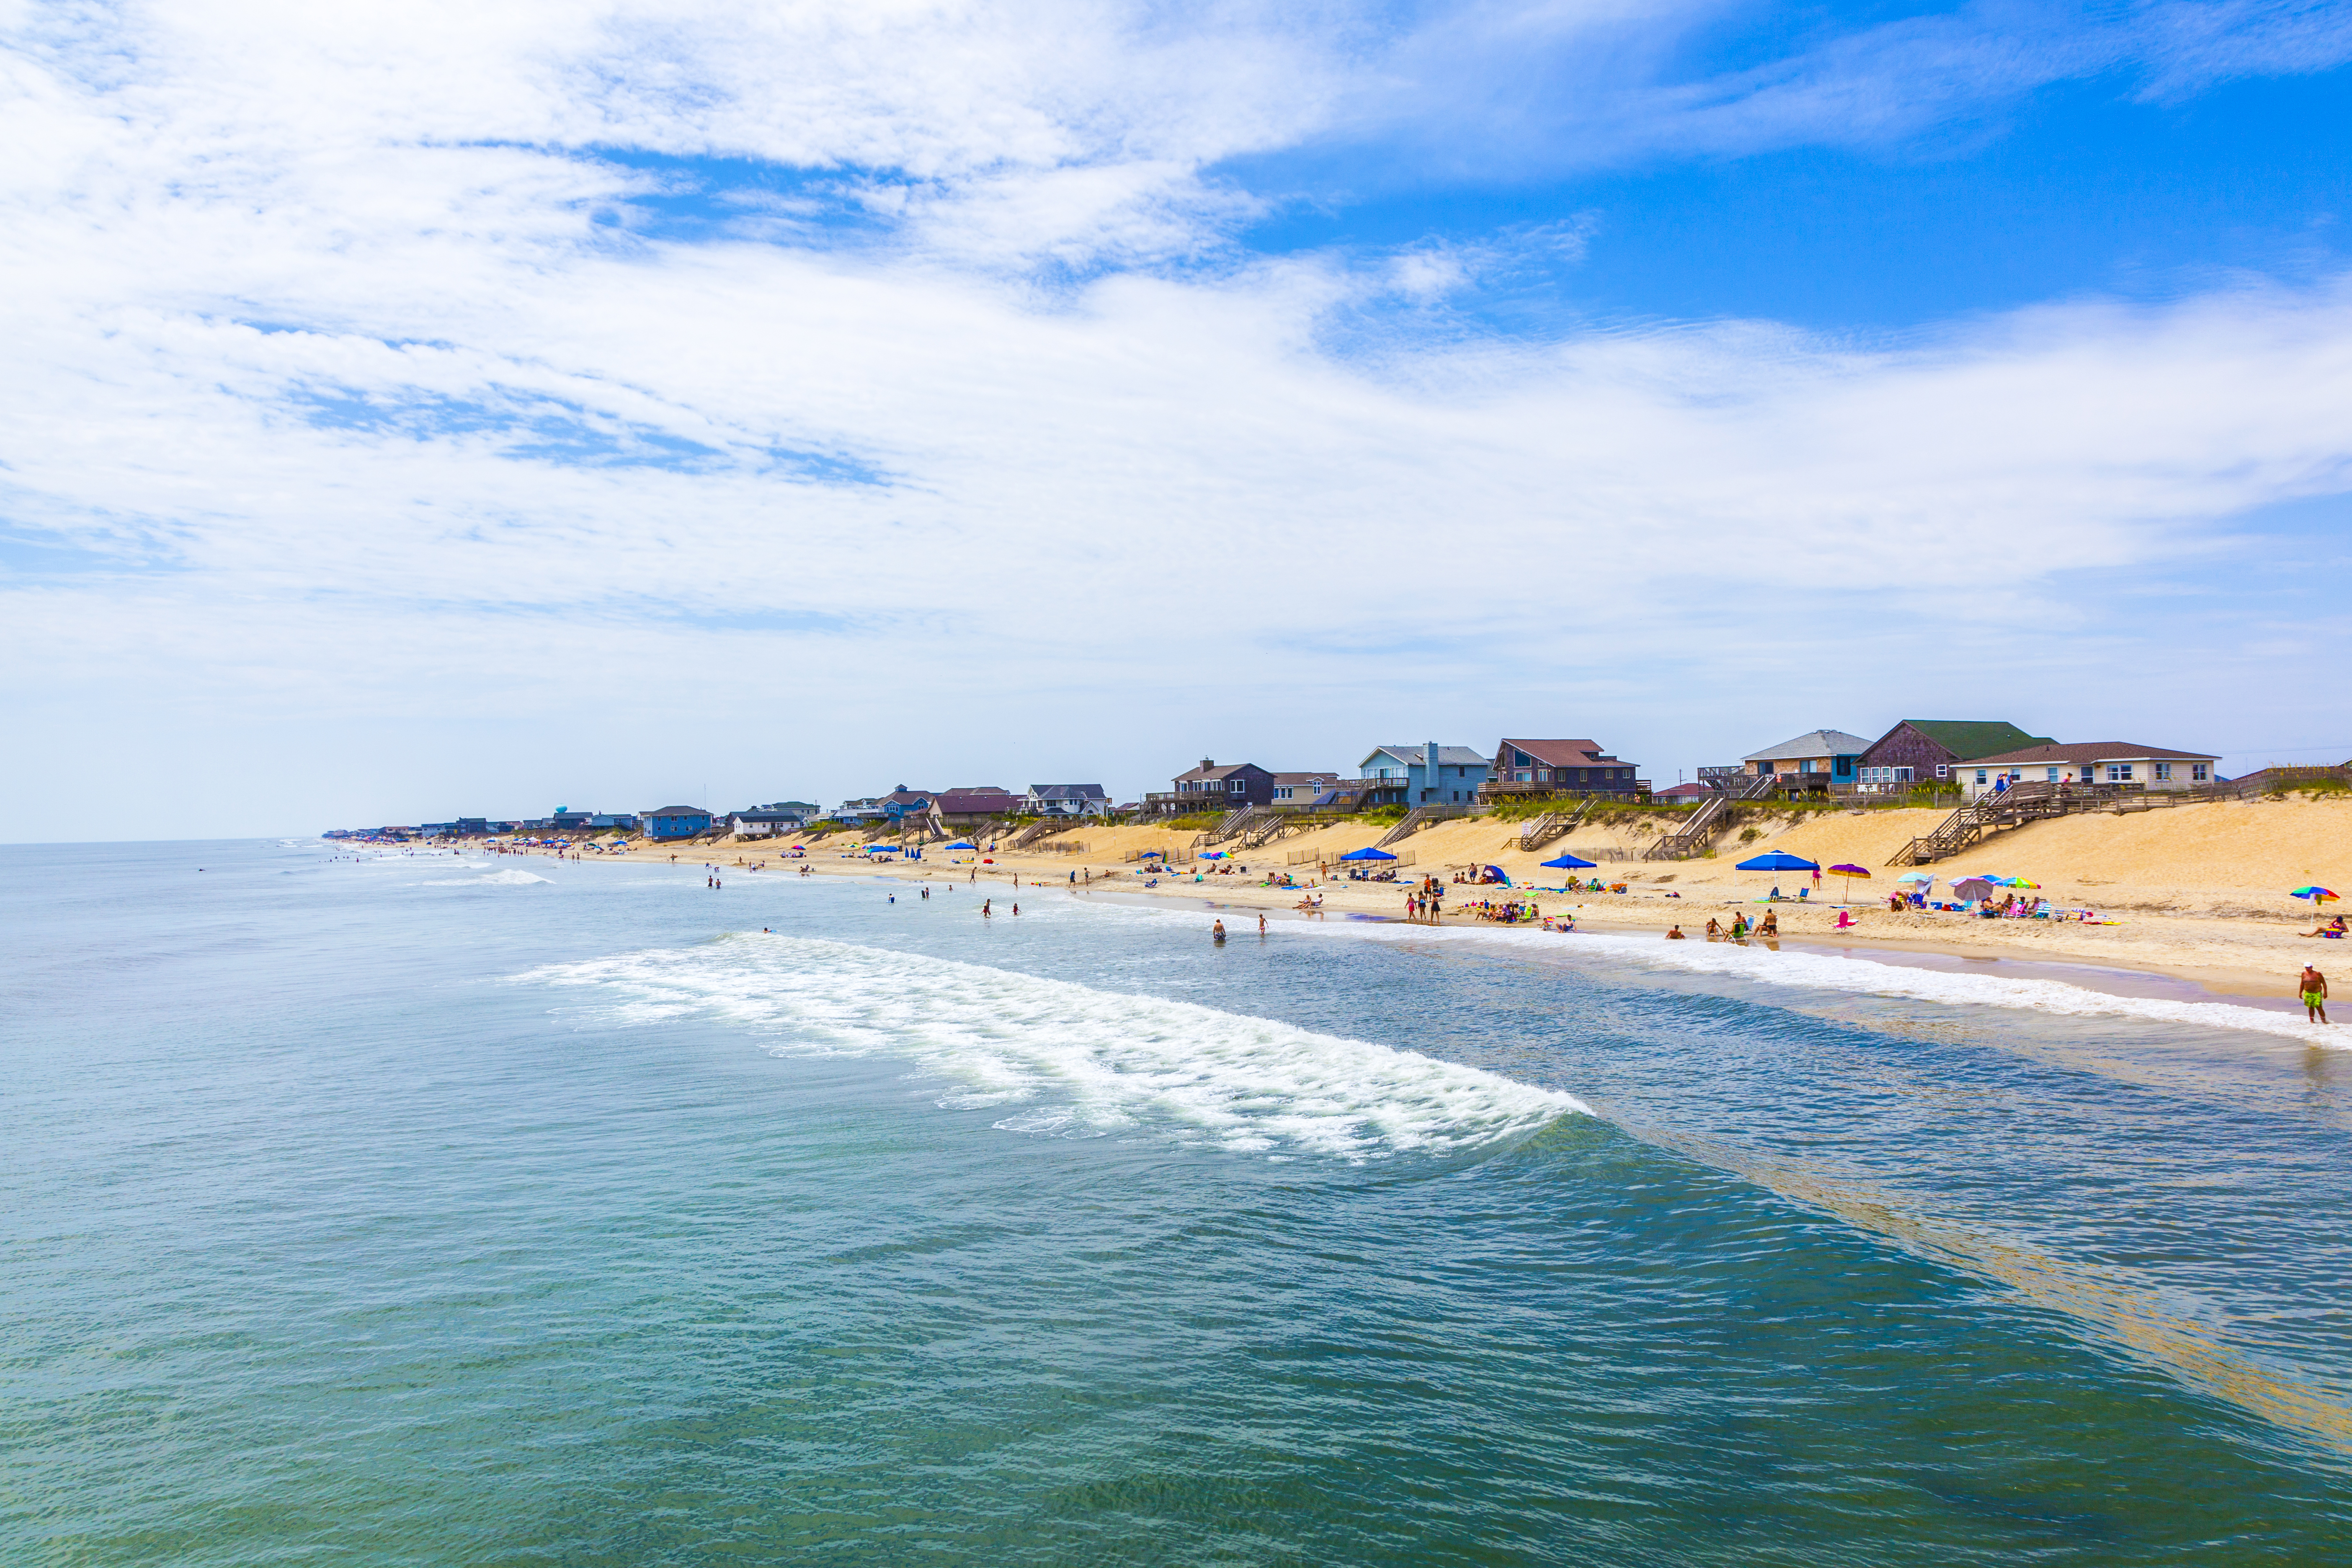 Nags Head N C Was Elished In The 1830s As Outer Banks First Tourist Destination Thanks To Its Gorgeous Sandy Beaches